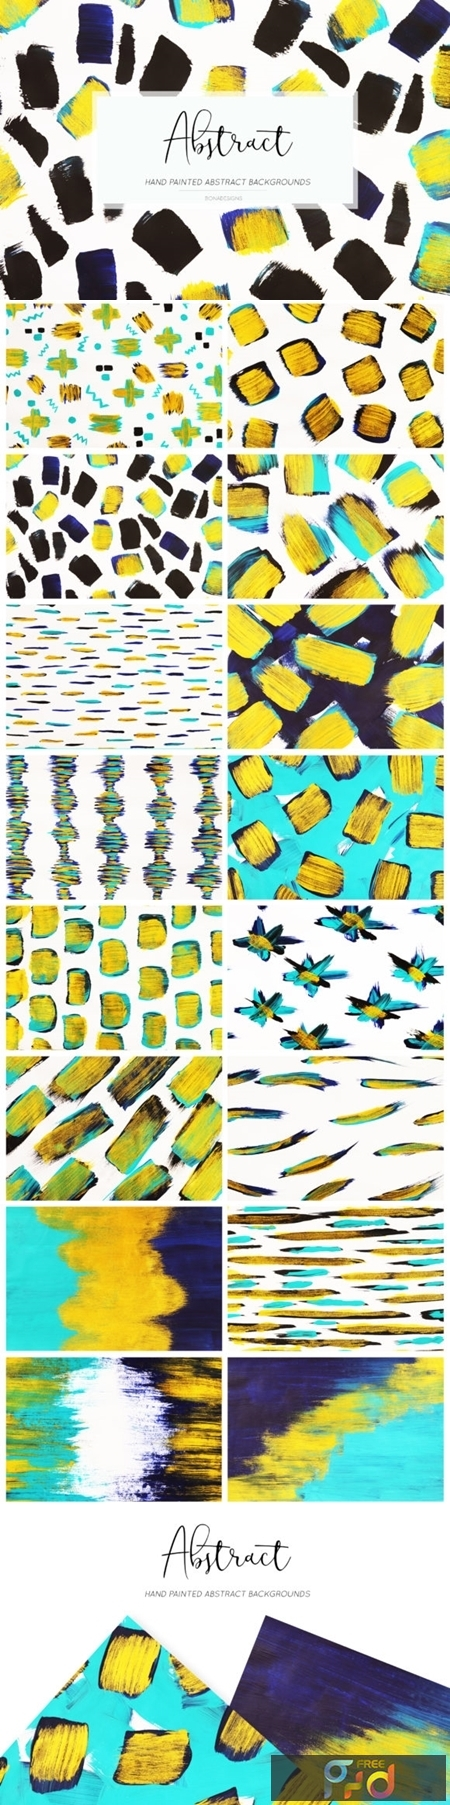 Blue, Black, Gold Abstract Backgrounds 1658507 1